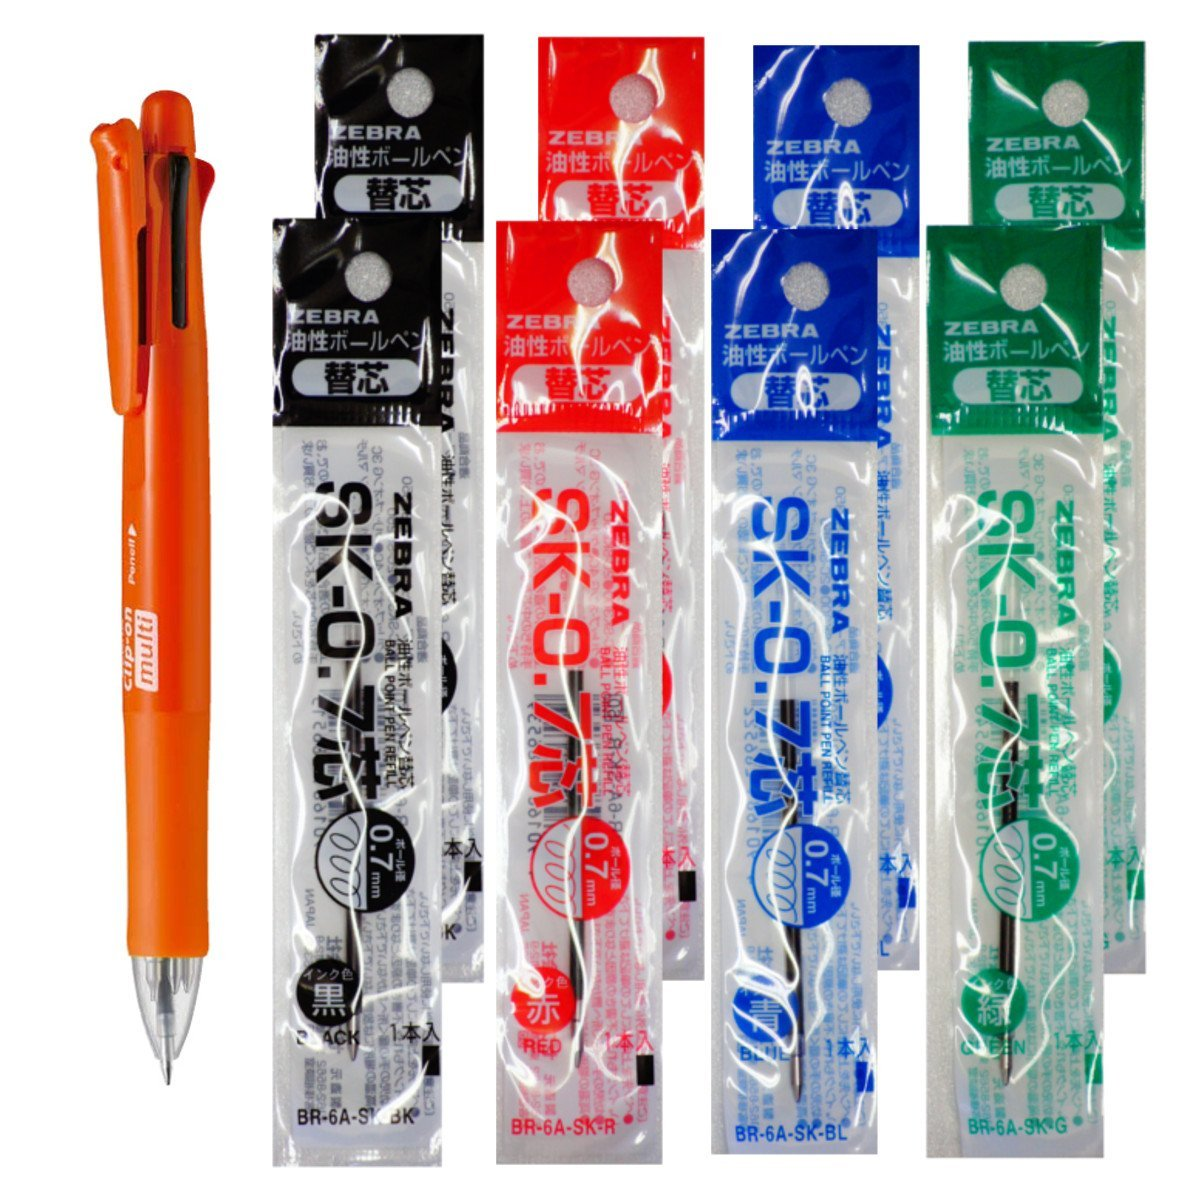 Zebra B4SA1 Orange Pen + SK-0.7 Black, Blue, Red and Green 0.7mm Refills (8pcs) - Assorted [B4SA1_8-SK-0.7]